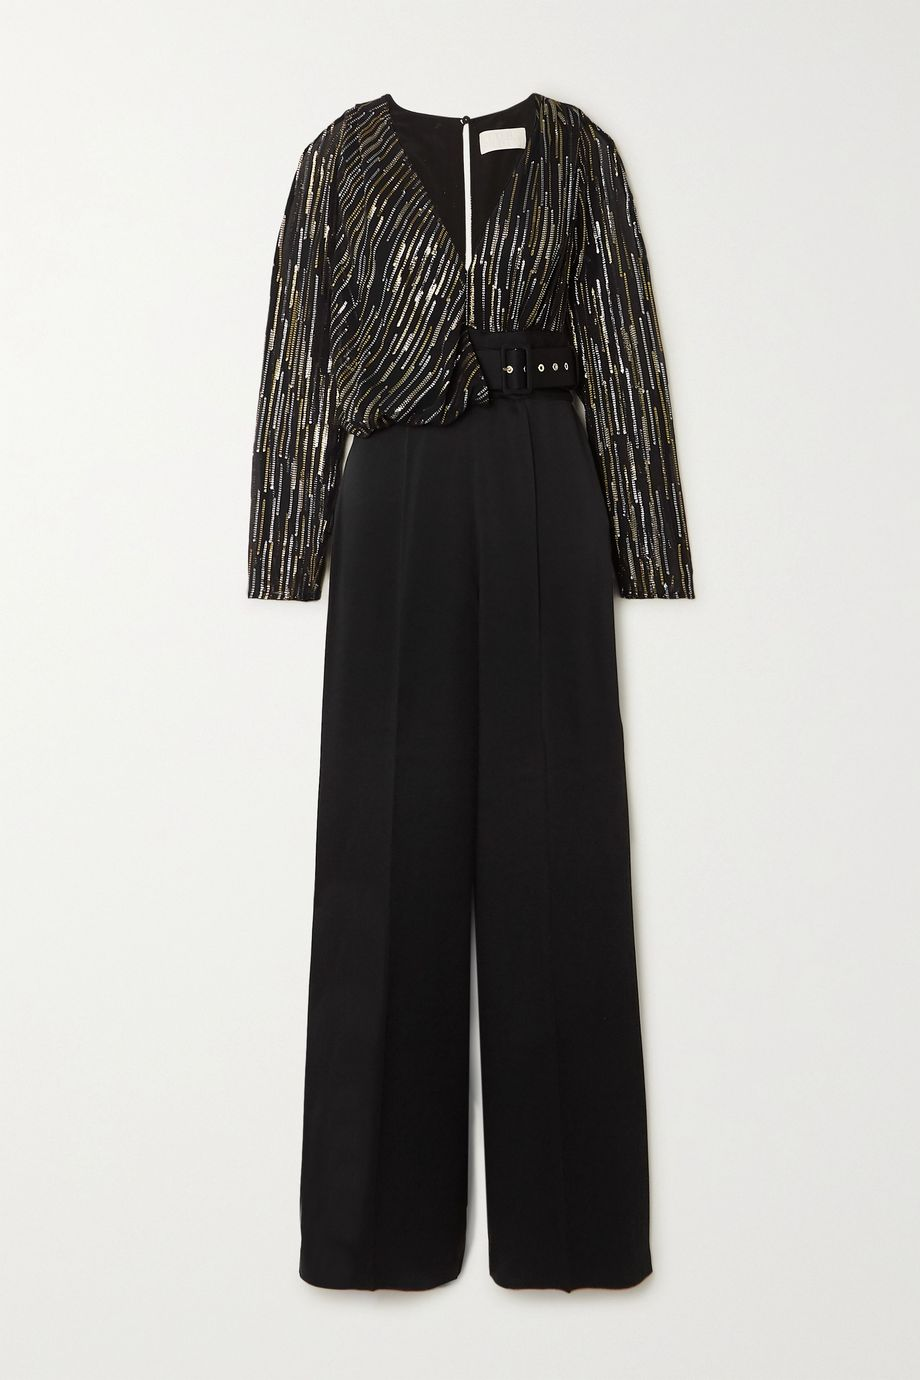 Peter Pilotto Silk and Lurex-blend fil coupé chiffon and cady jumpsuit